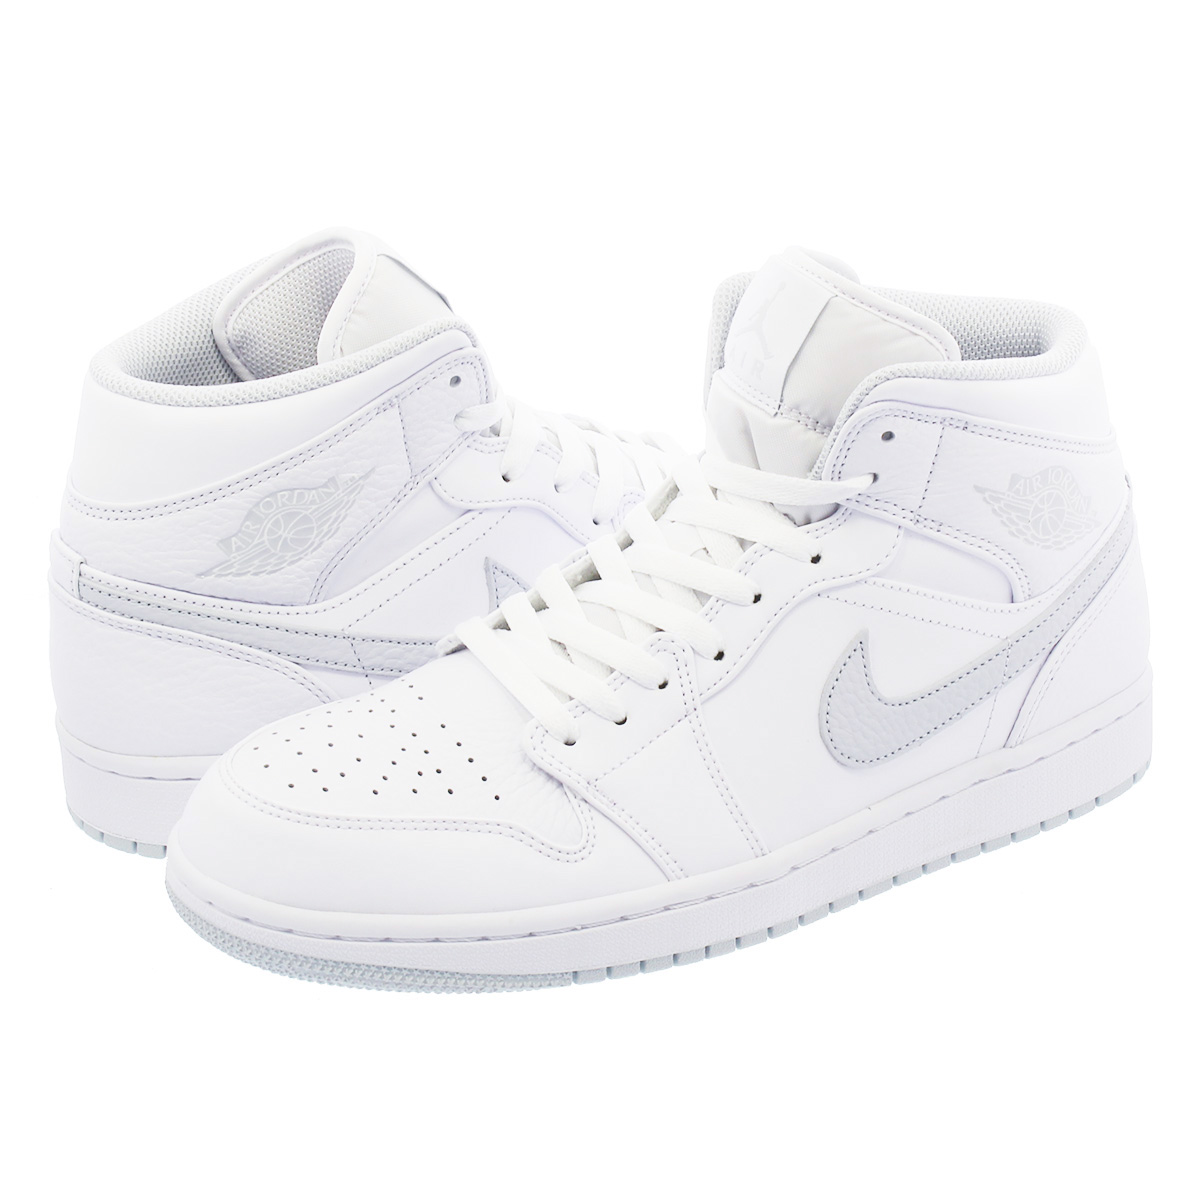 SELECT SHOP LOWTEX |  Global Market: NIKE AIR Air JORDAN 1 MID Nike Air AIR Jordan 1 mid WHITE/PURE PLATINUM/WHITE f17fde